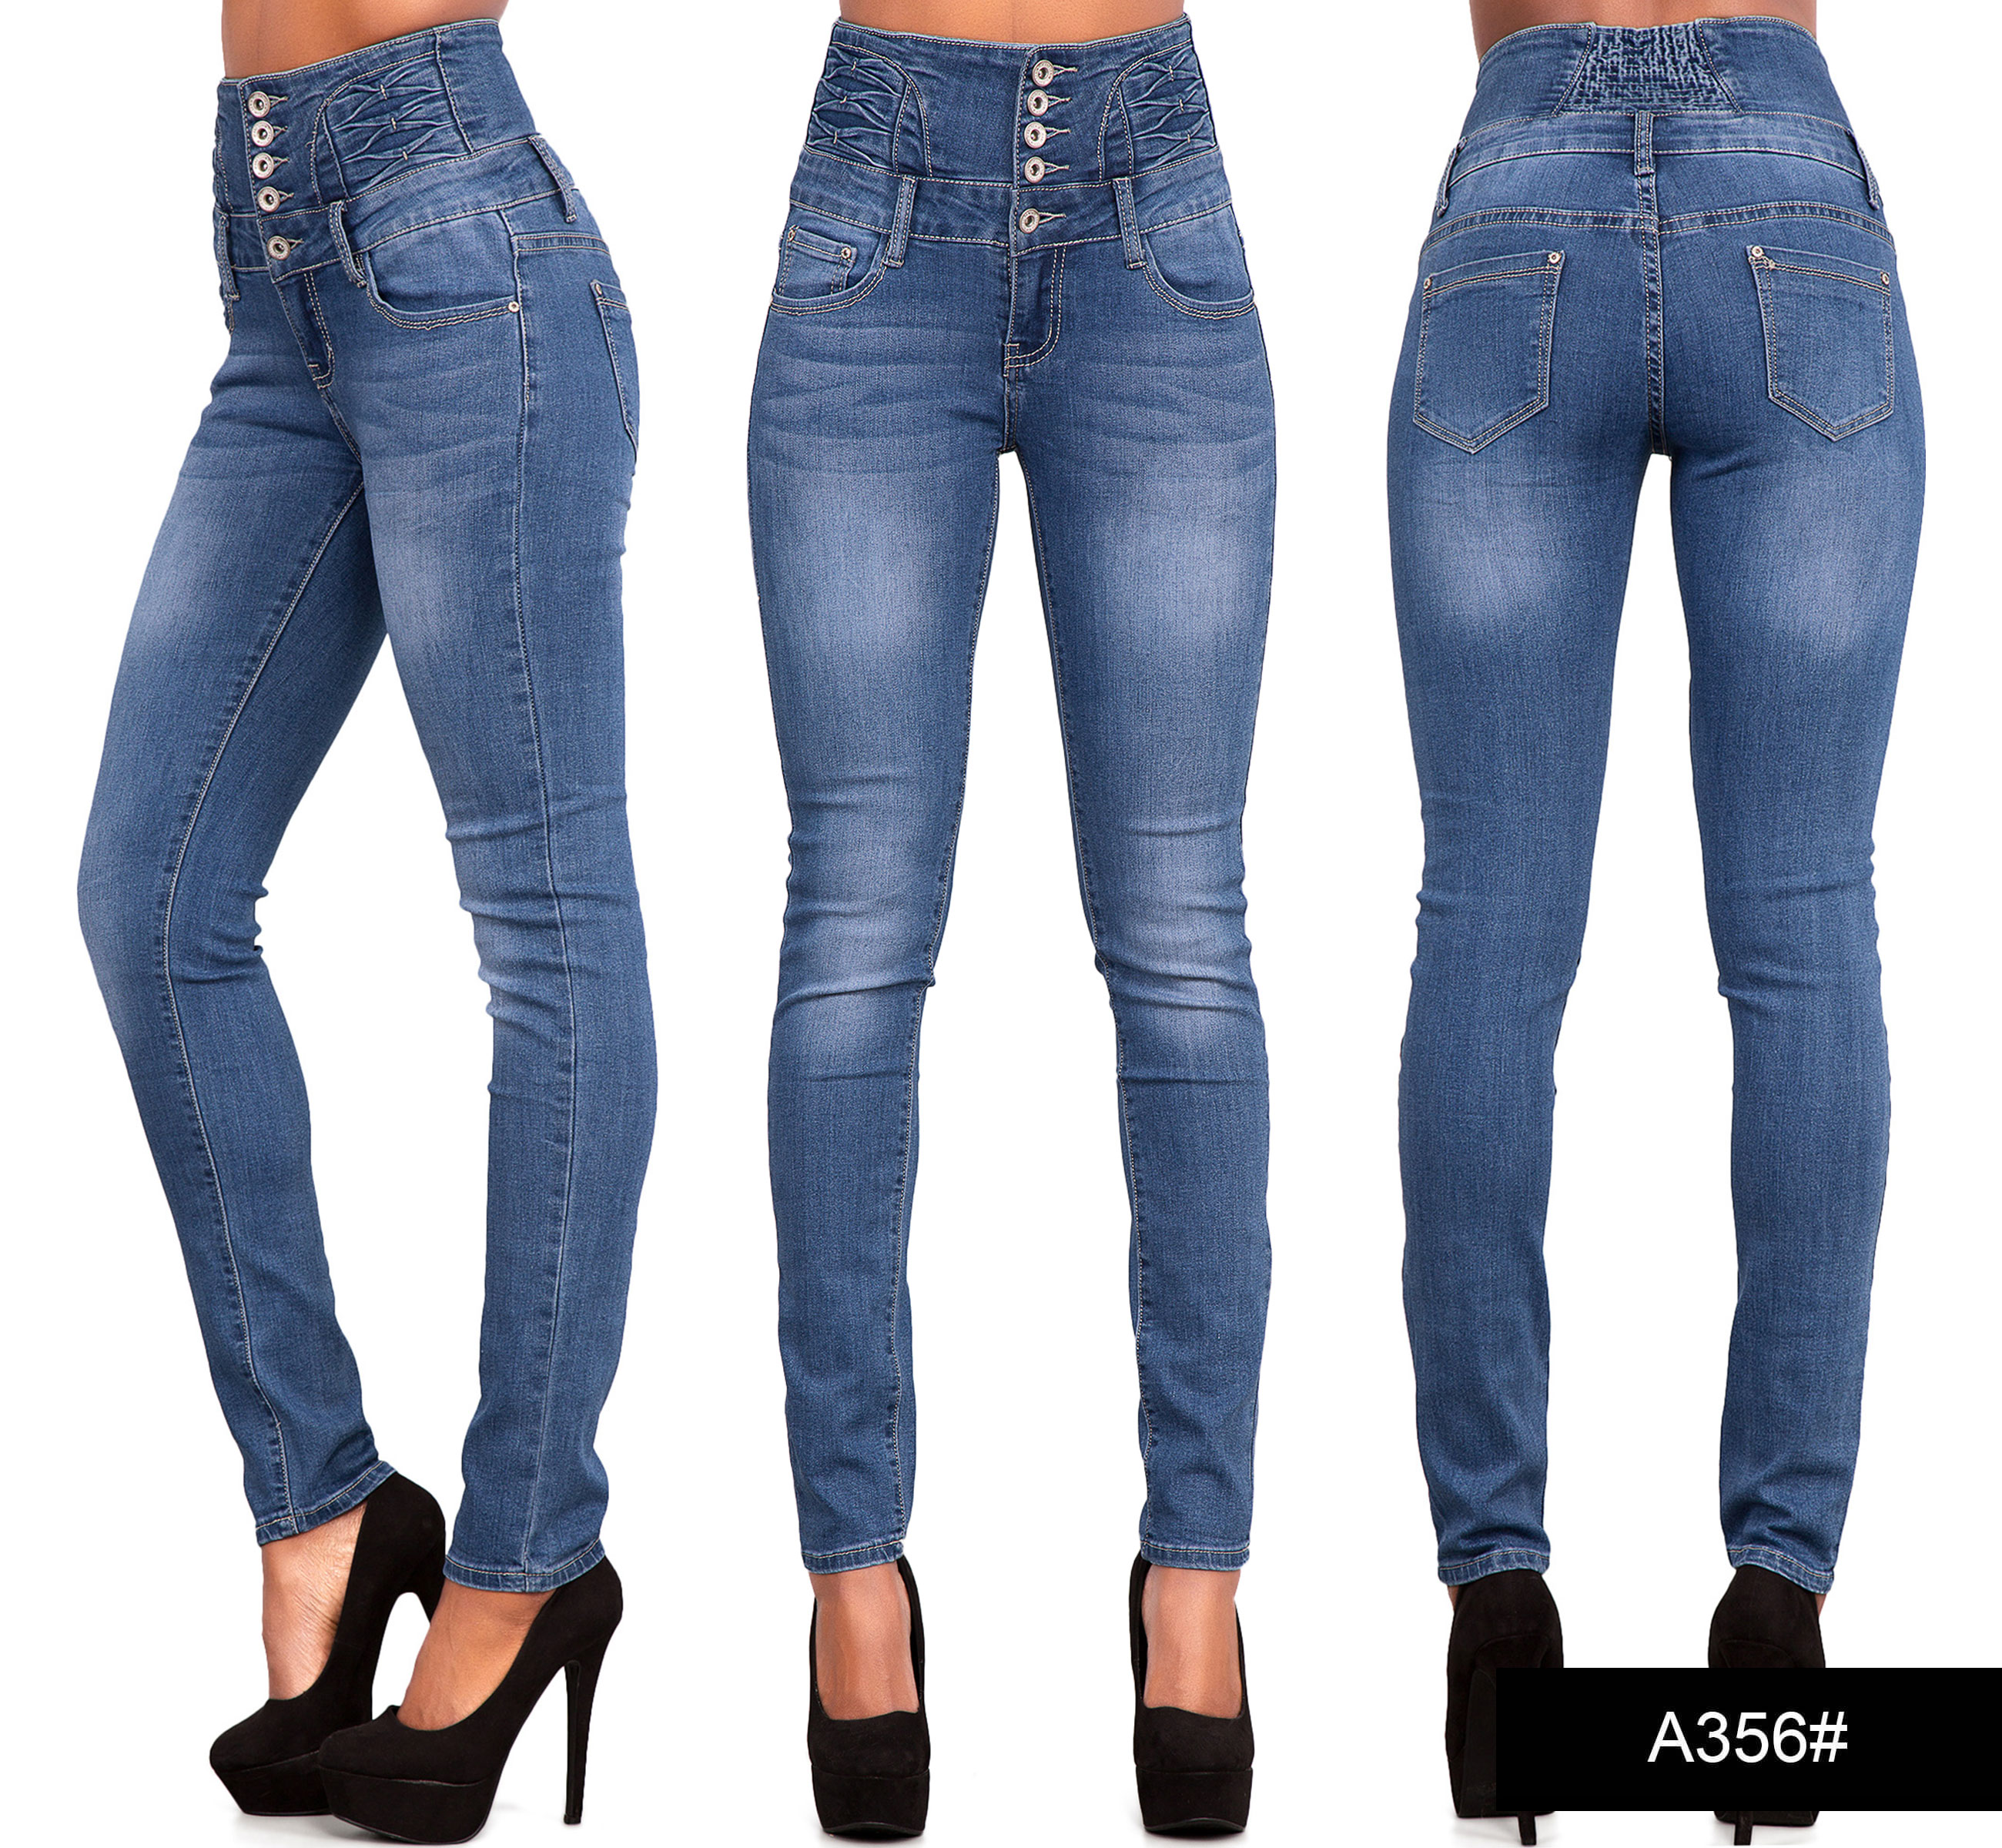 The most important thing about a pair of jeans is the fit. These classic straight-leg jeans sit comfortably at your waist, with a straight leg shape that is timeless and flattering.